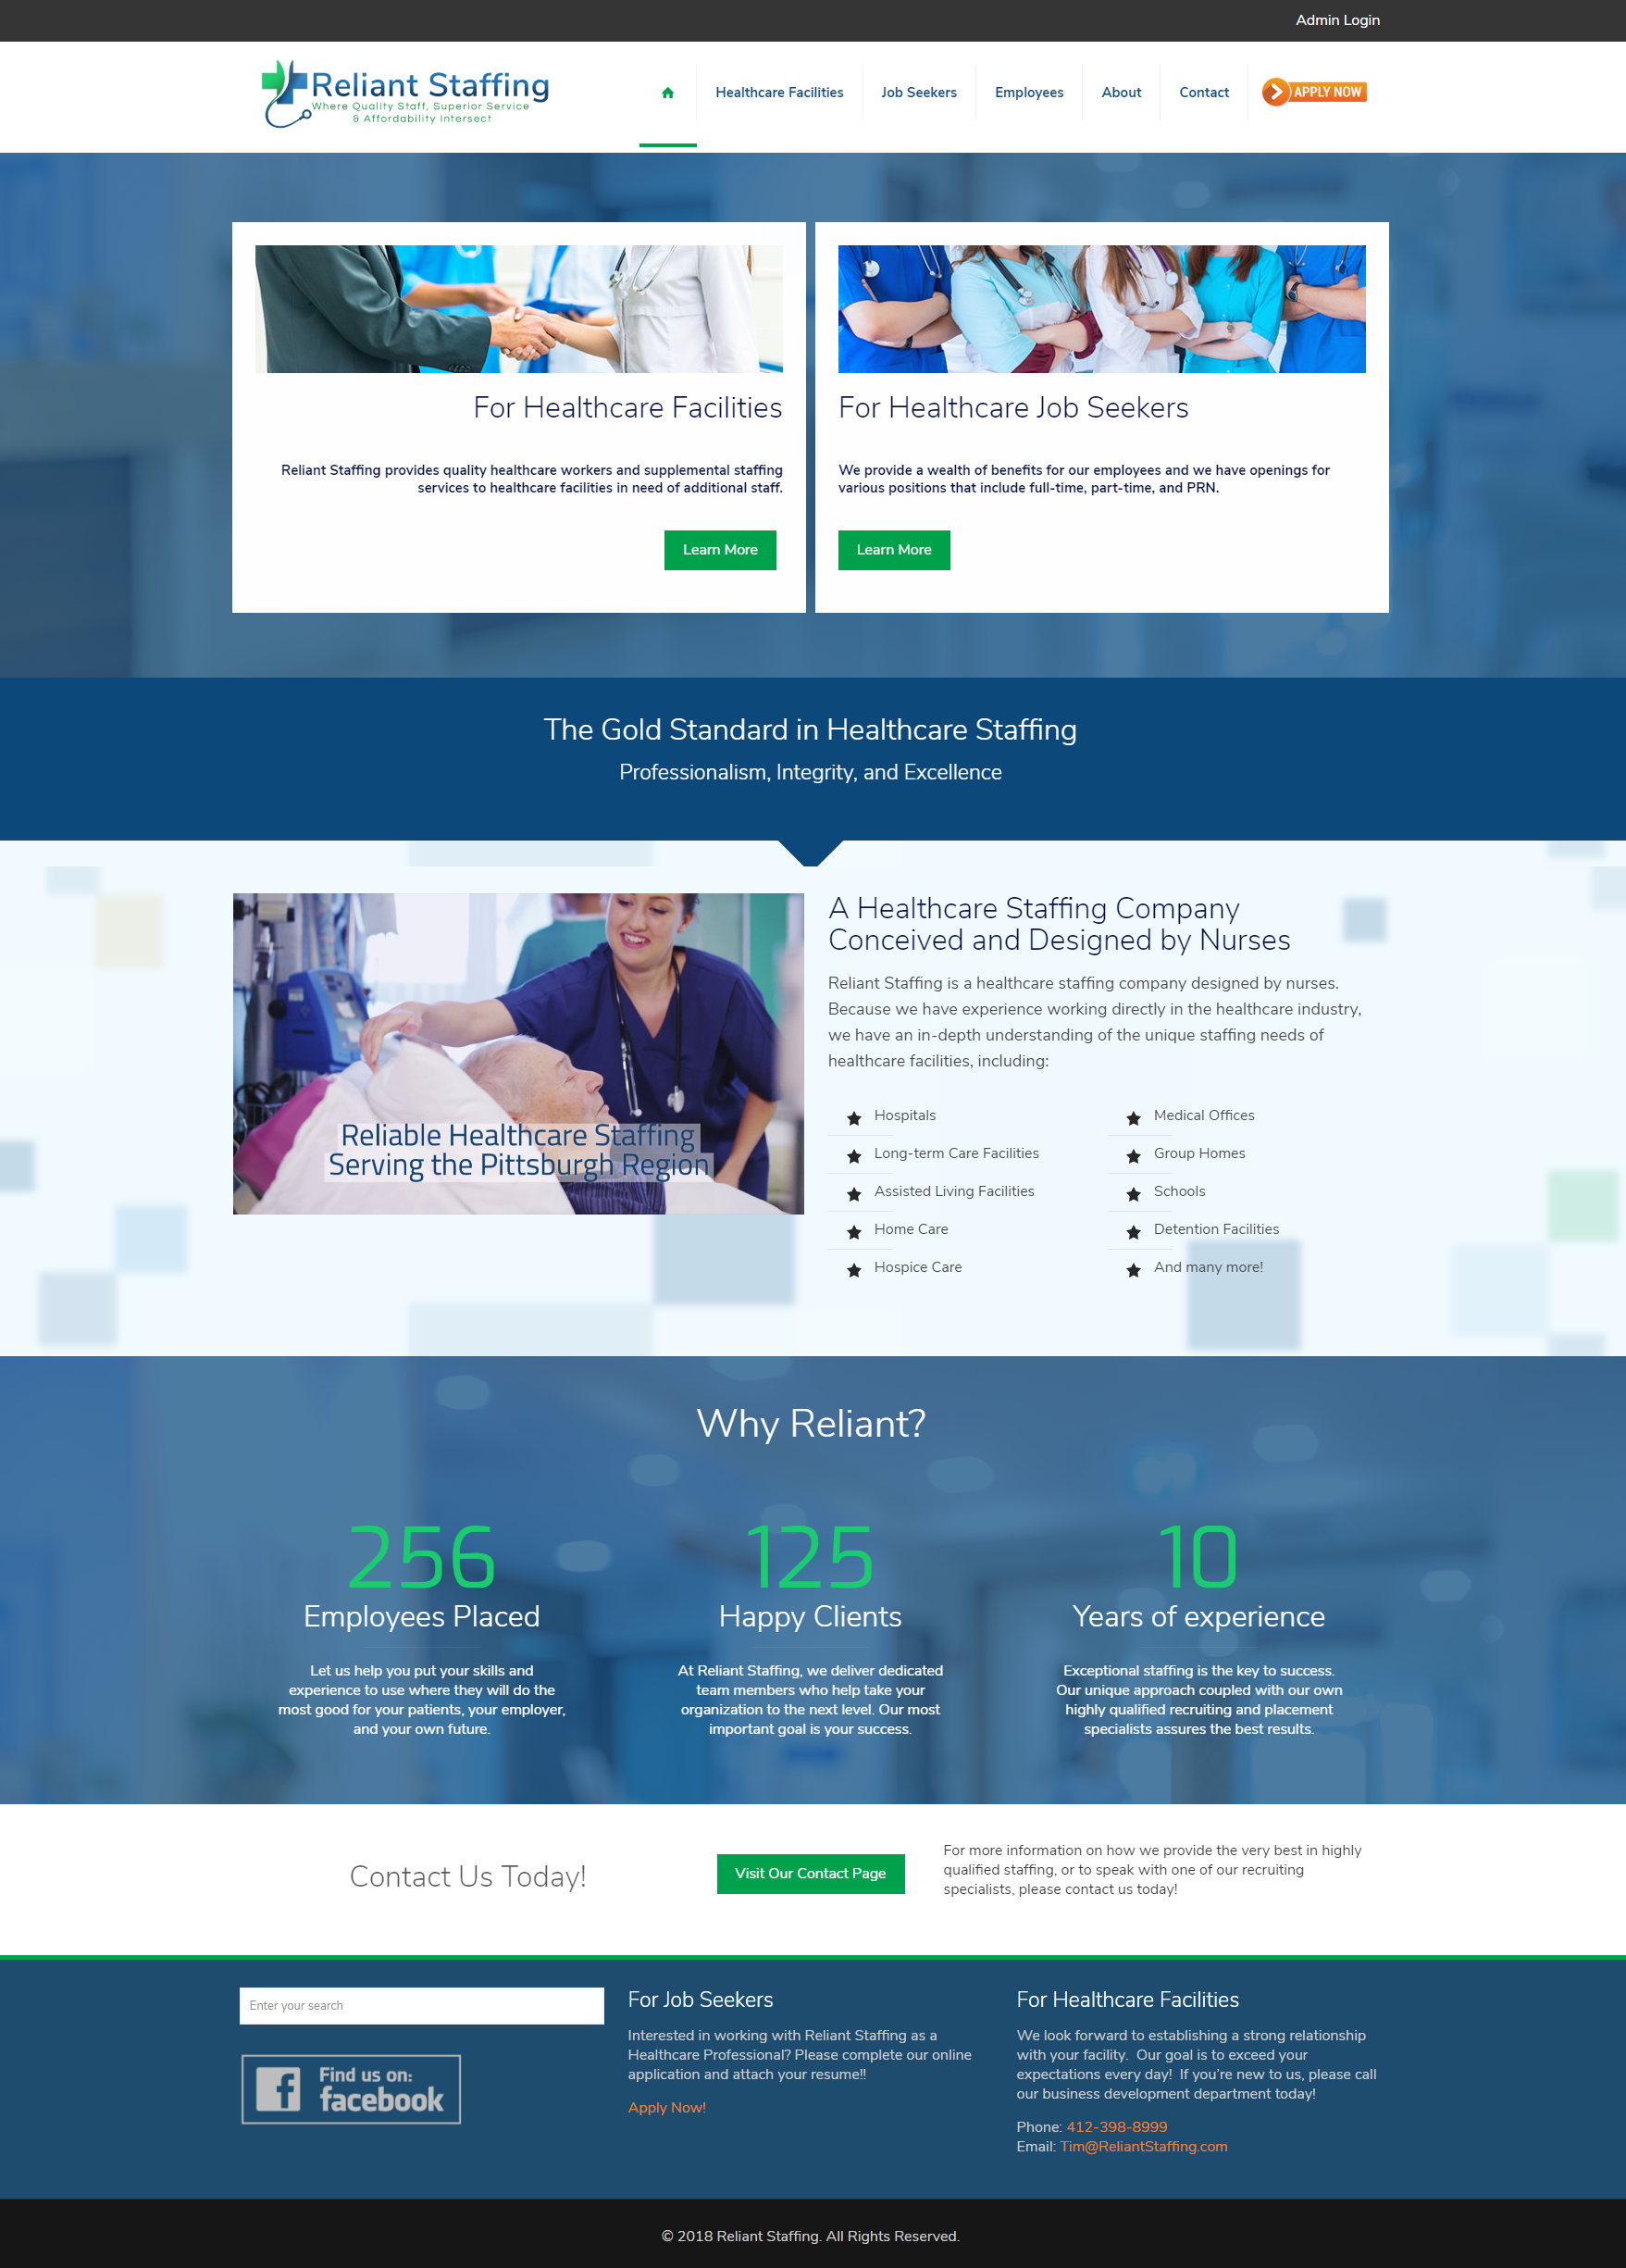 Reliant Staffing Website Design